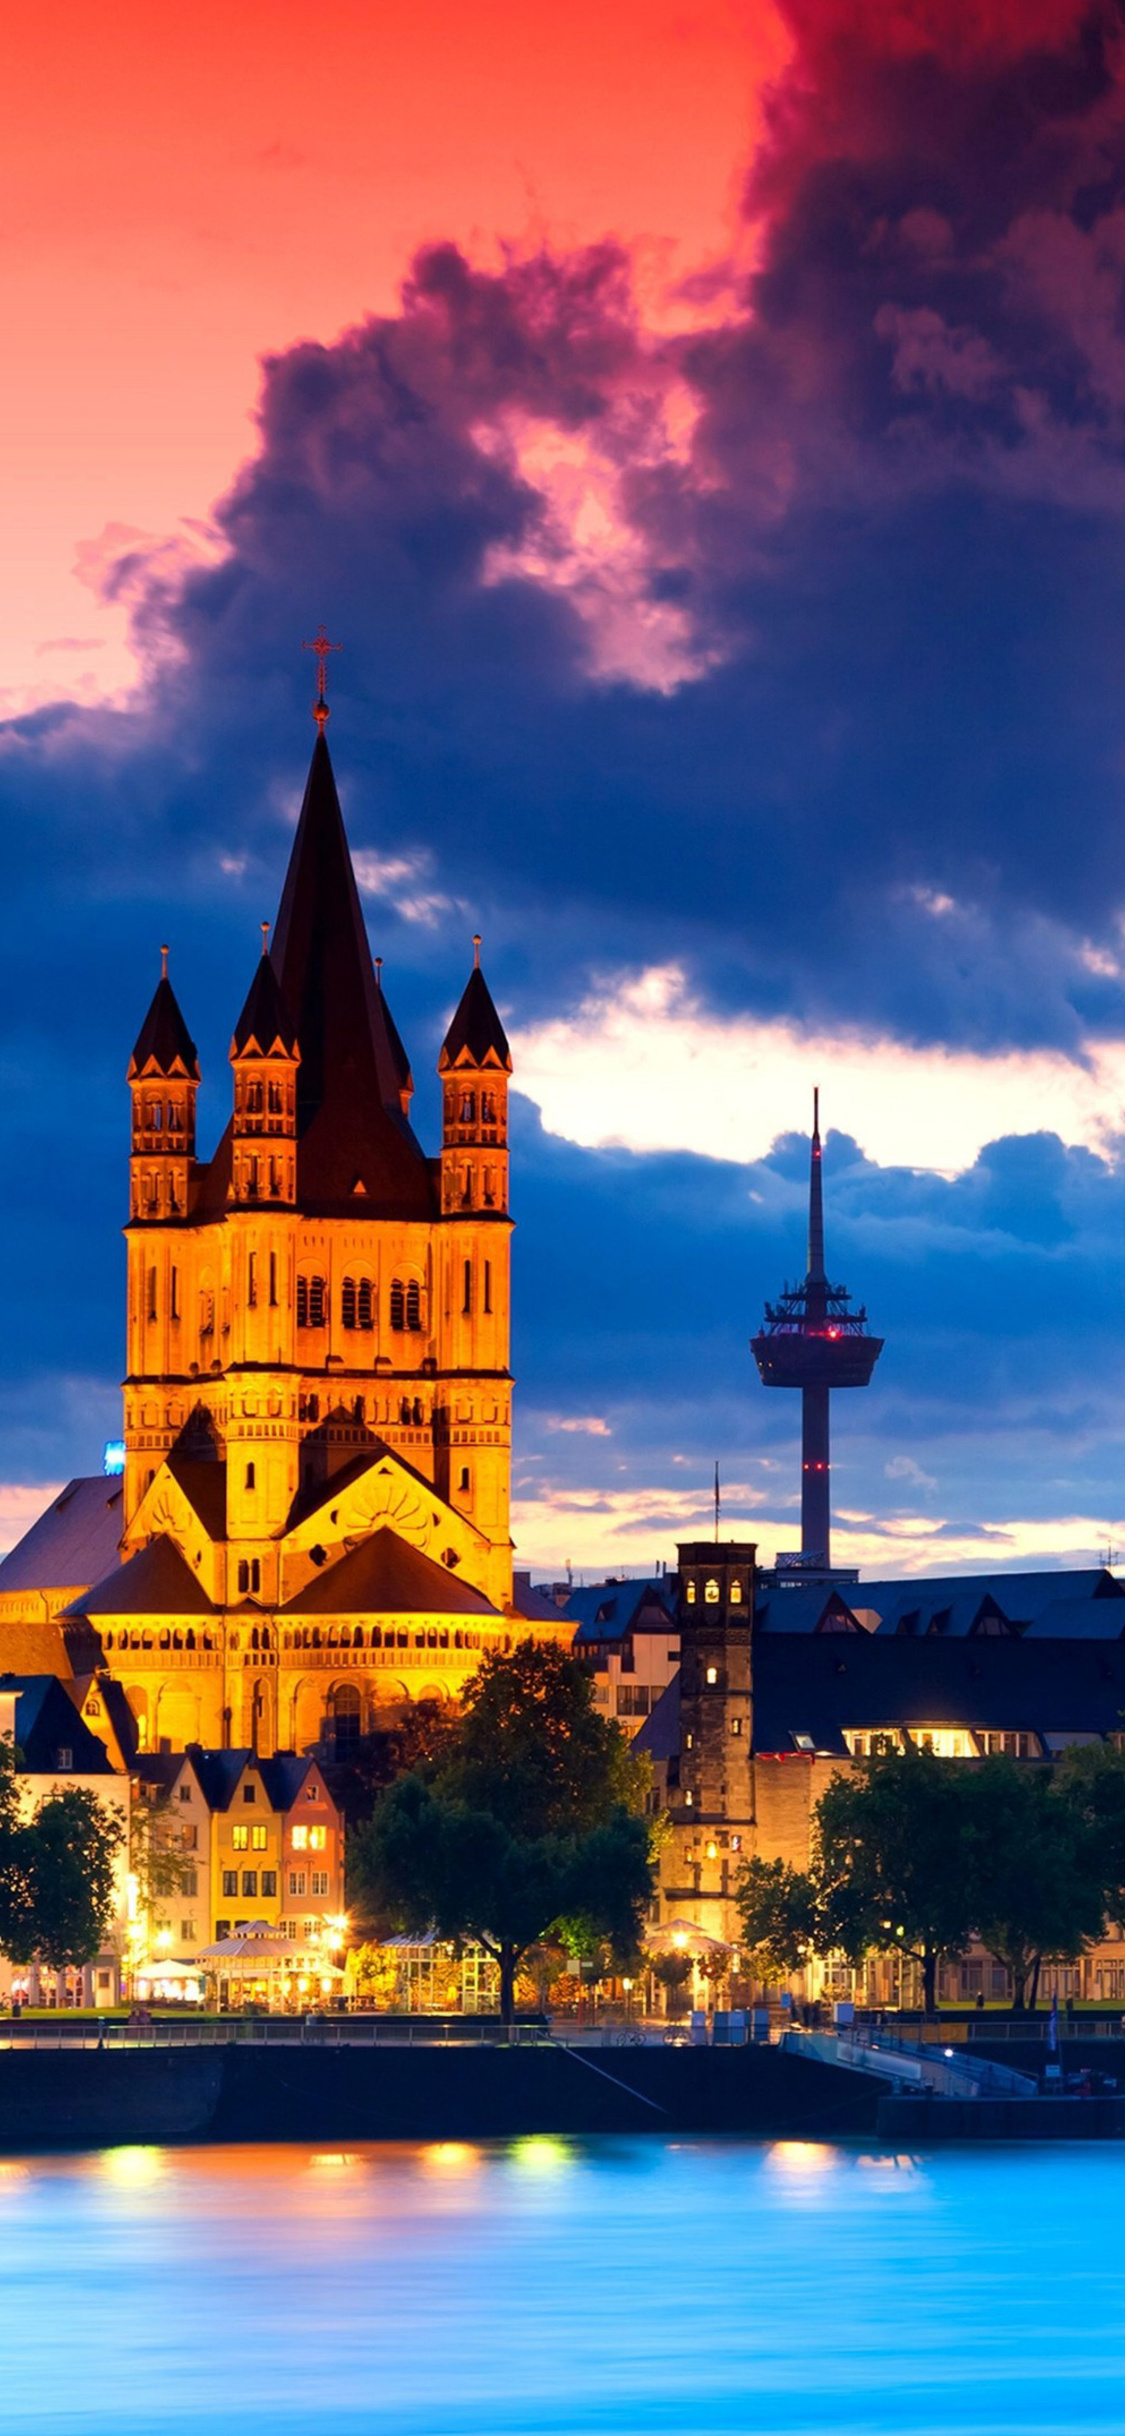 cologne-cathedral-in-gemany-4k-fe.jpg